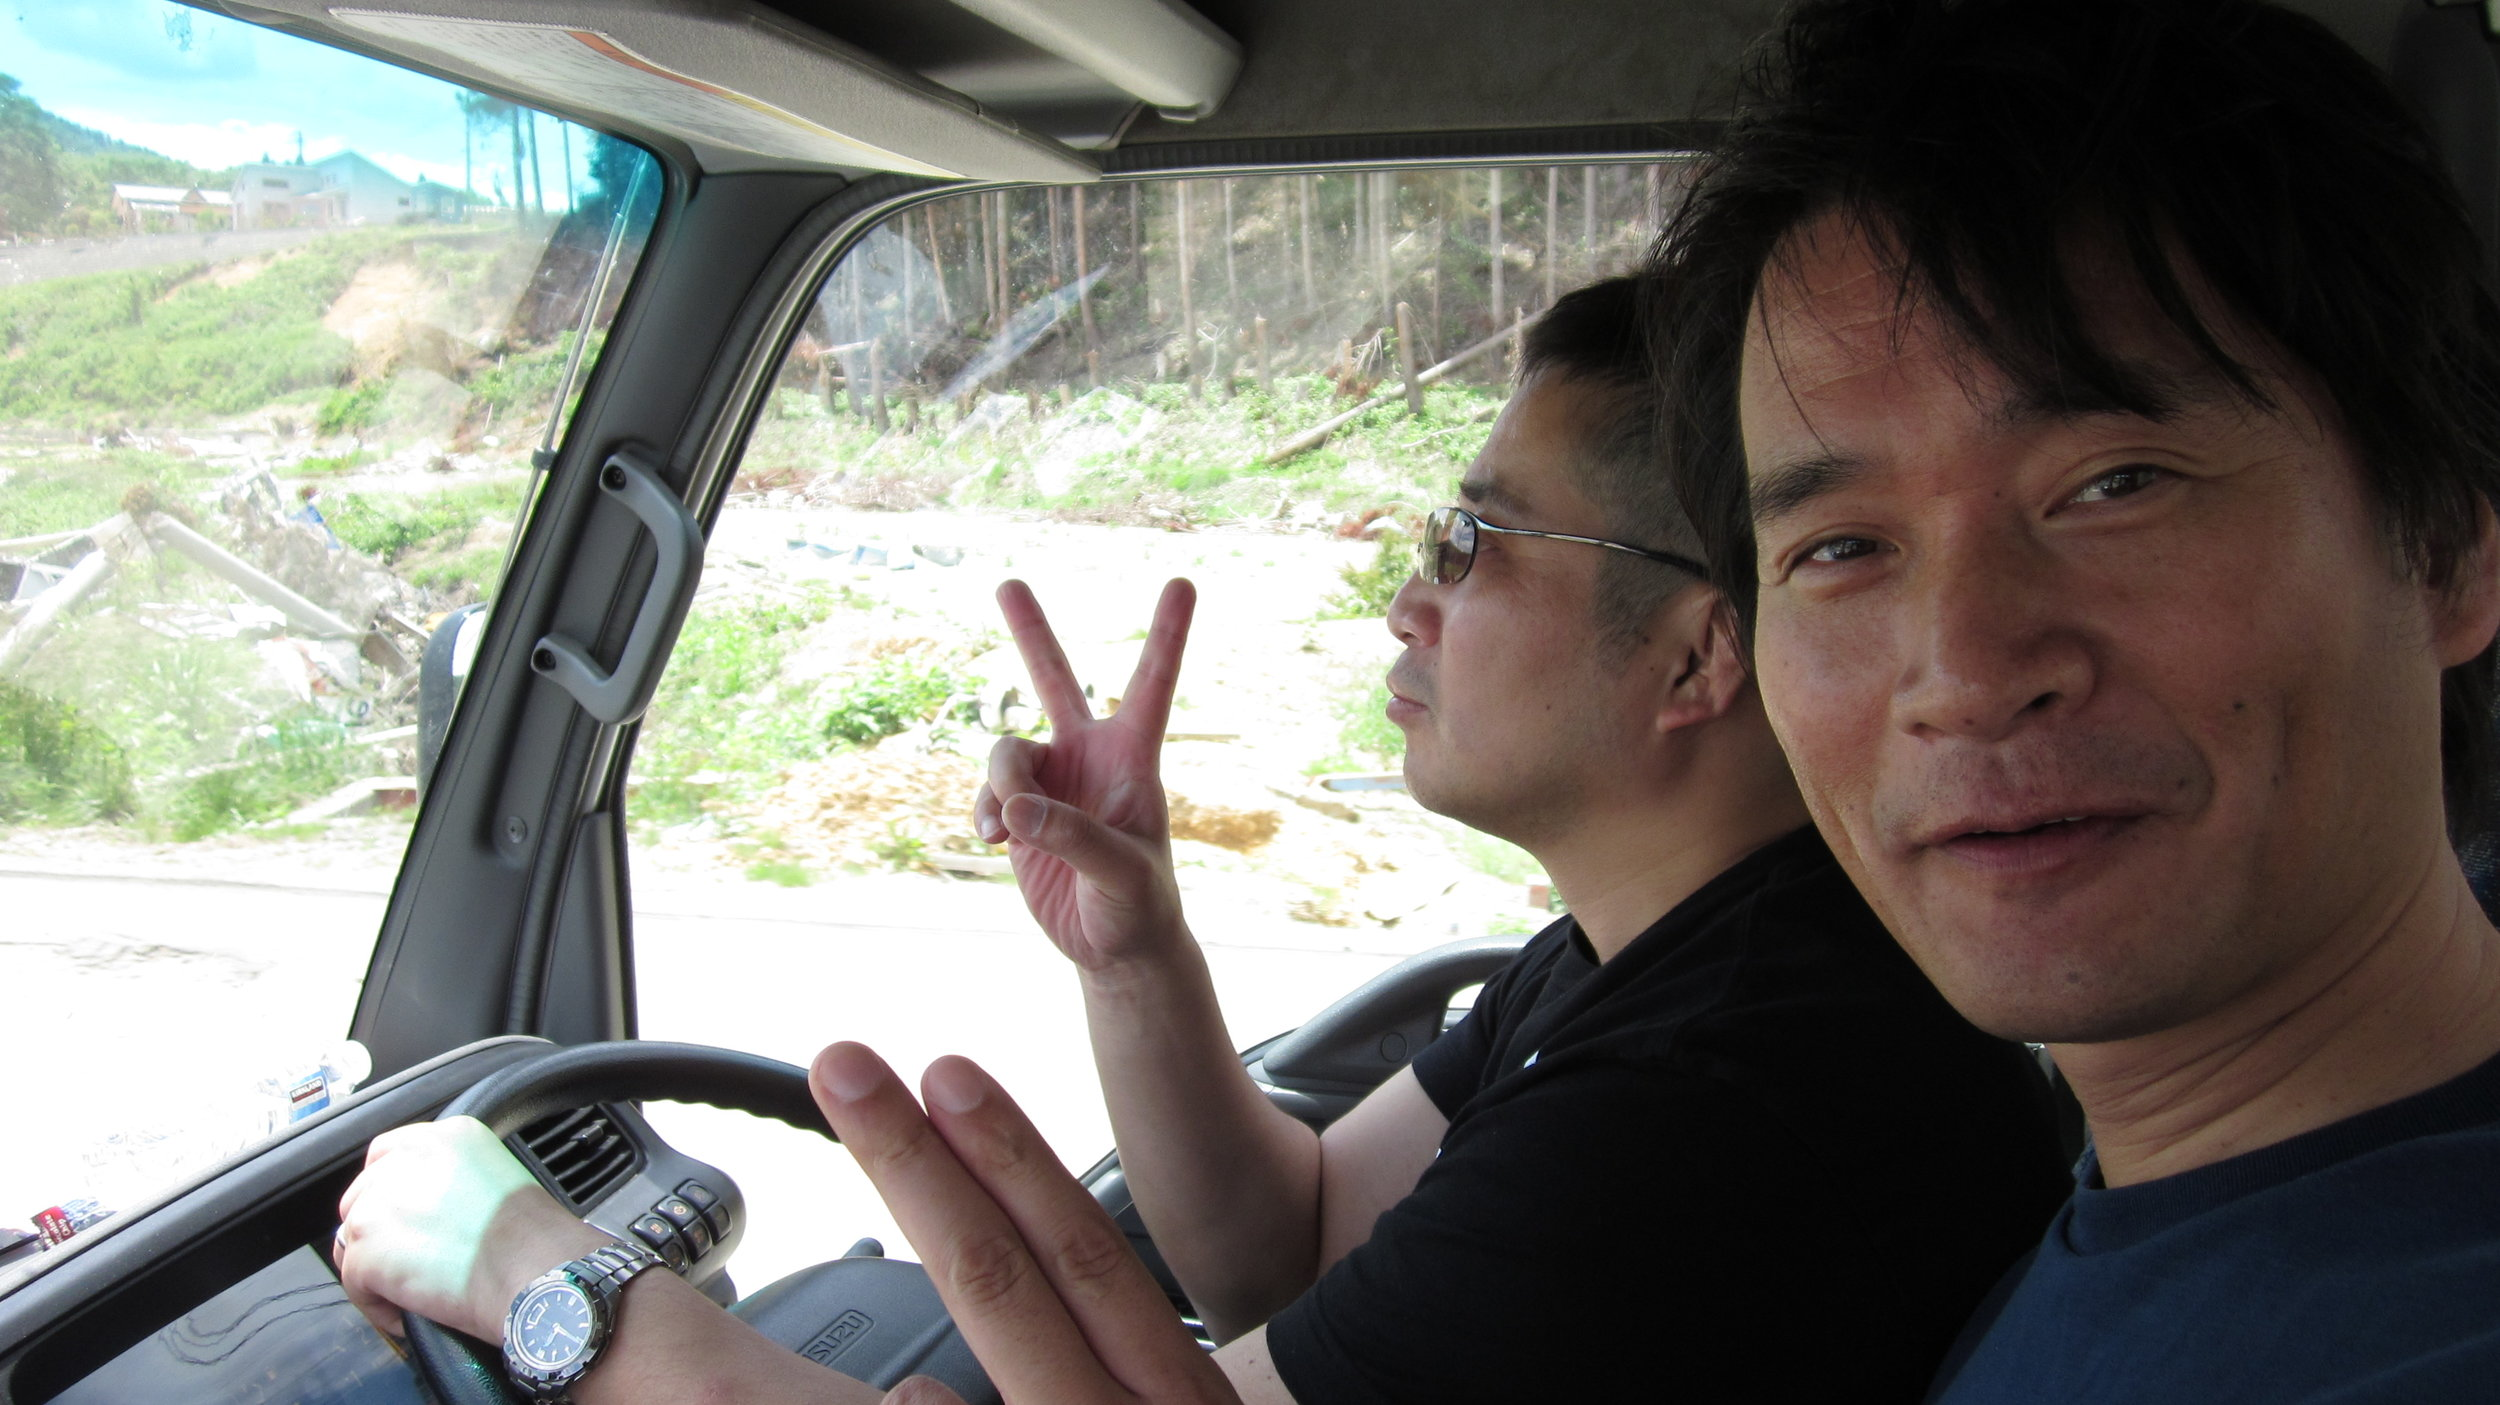 Two firefighters from Yamagata who spent a day volunteering with O.G.A. for Aid in Minamisanriku